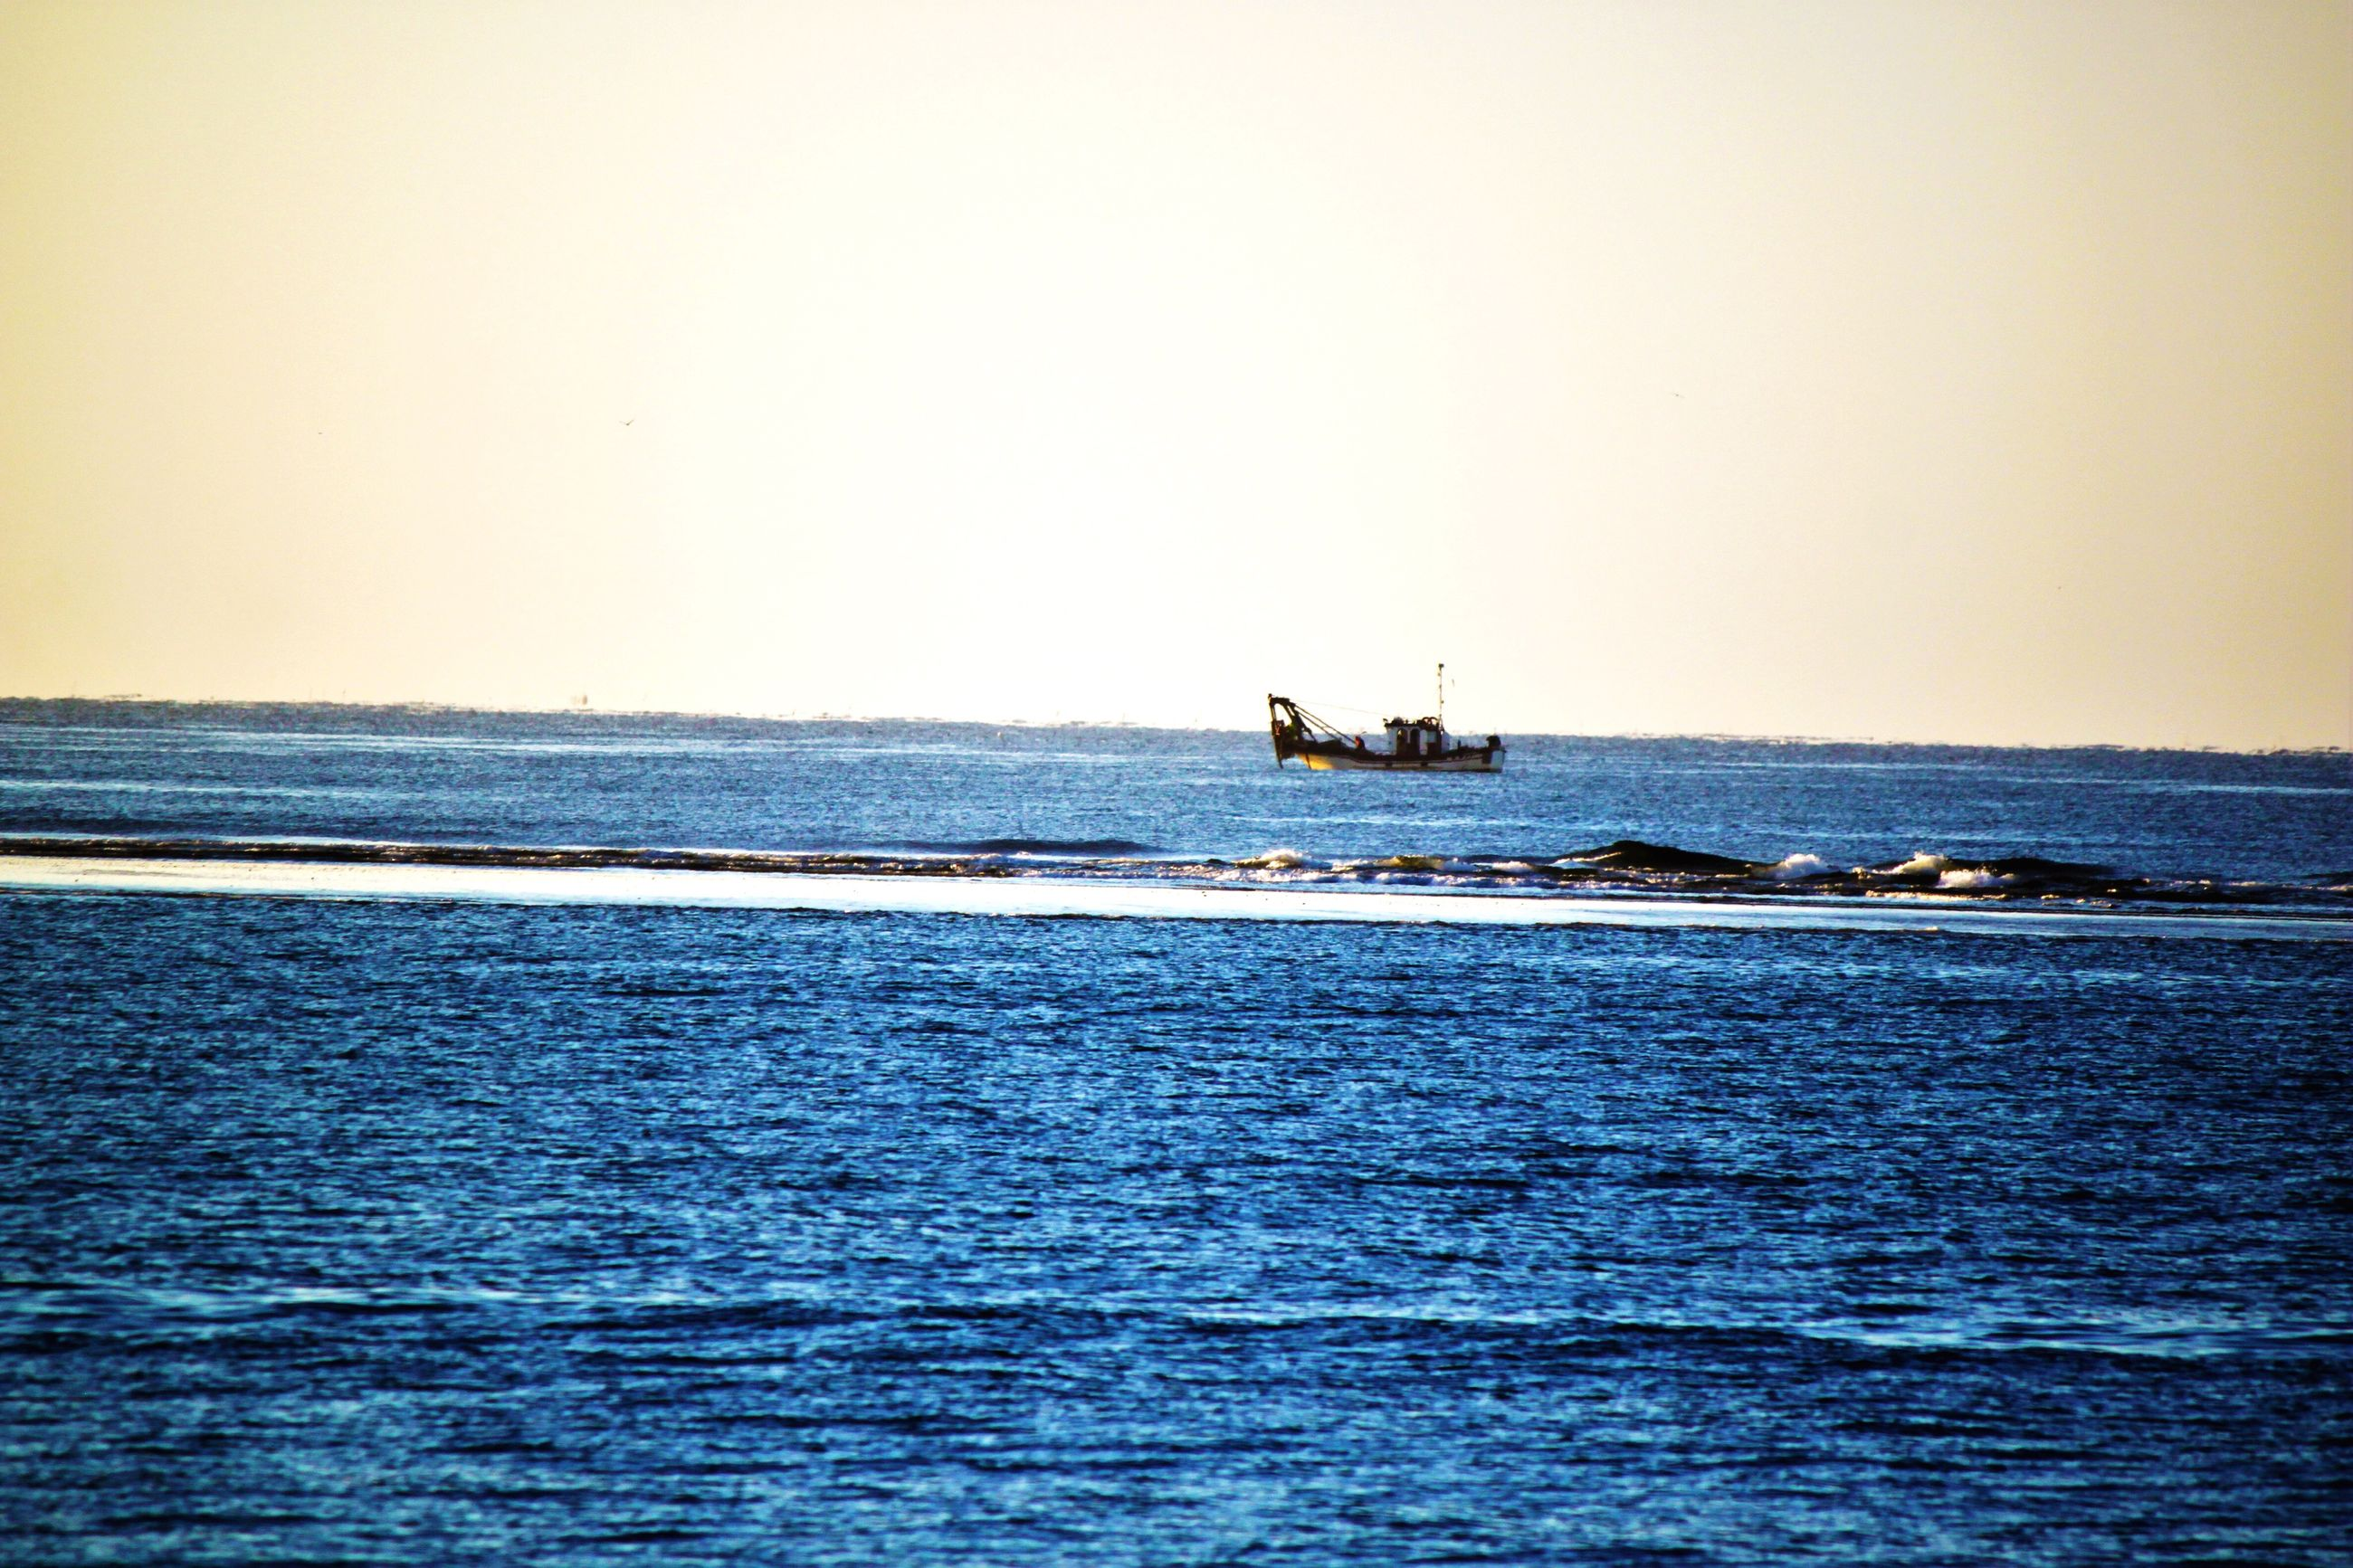 nautical vessel, transportation, water, sea, boat, mode of transport, waterfront, copy space, clear sky, scenics, calm, tranquil scene, sailing, tranquility, nature, beauty in nature, outdoors, ocean, day, blue, journey, no people